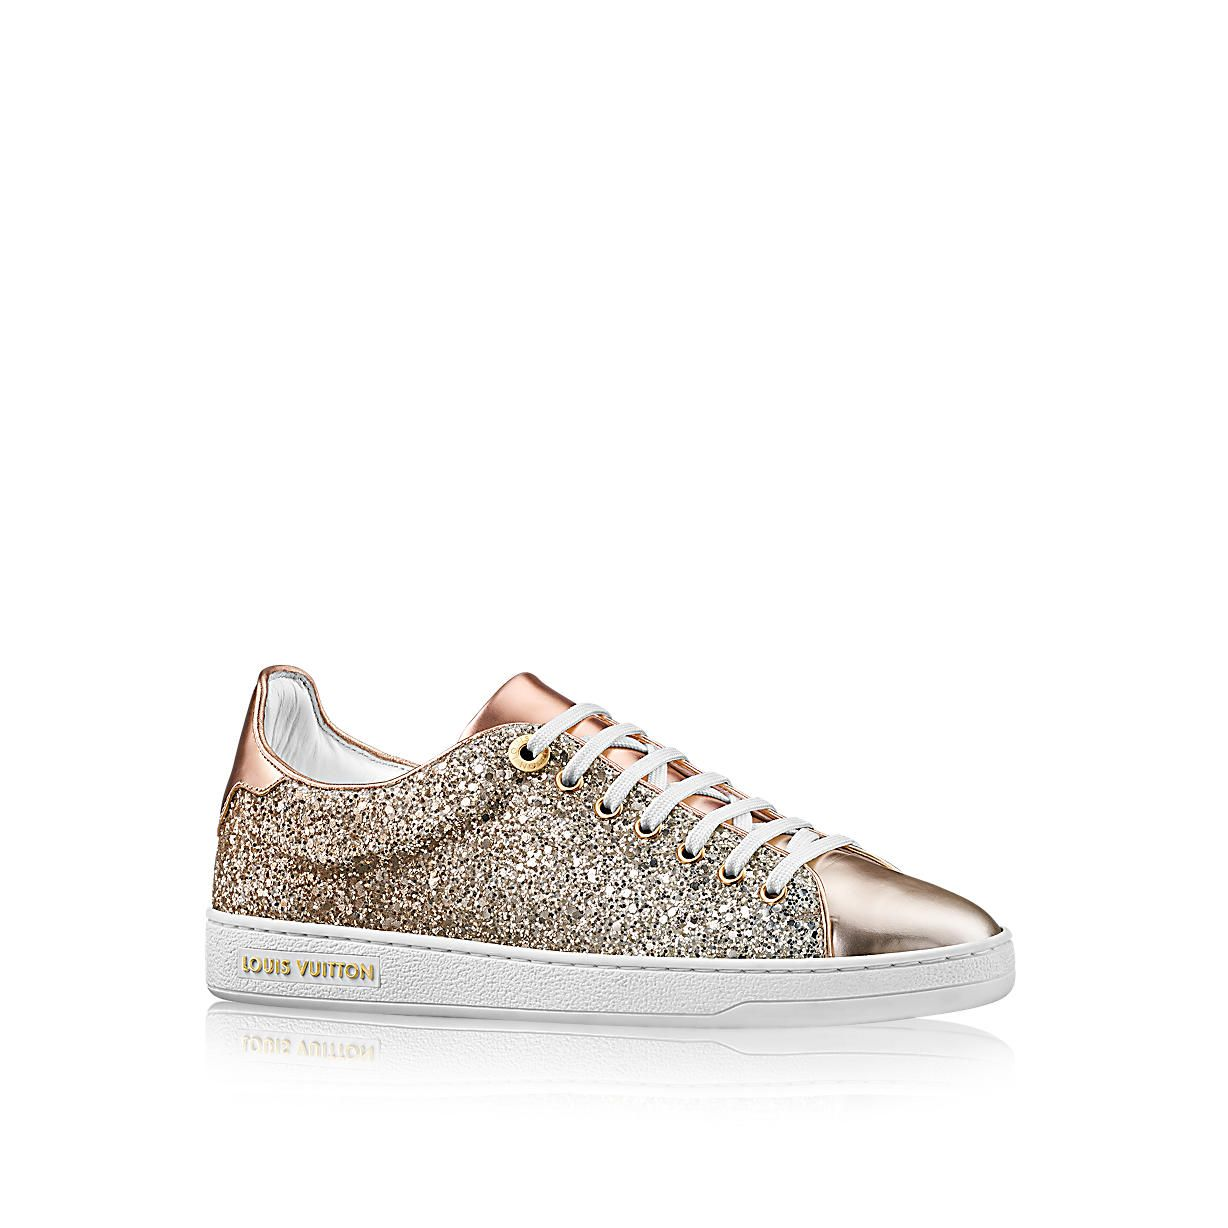 on sale 9b39e e5129 Sneaker Frontrow in MULHER s SAPATOS collections by Louis Vuitton Basket  Montante, Soulier, Chaussure,